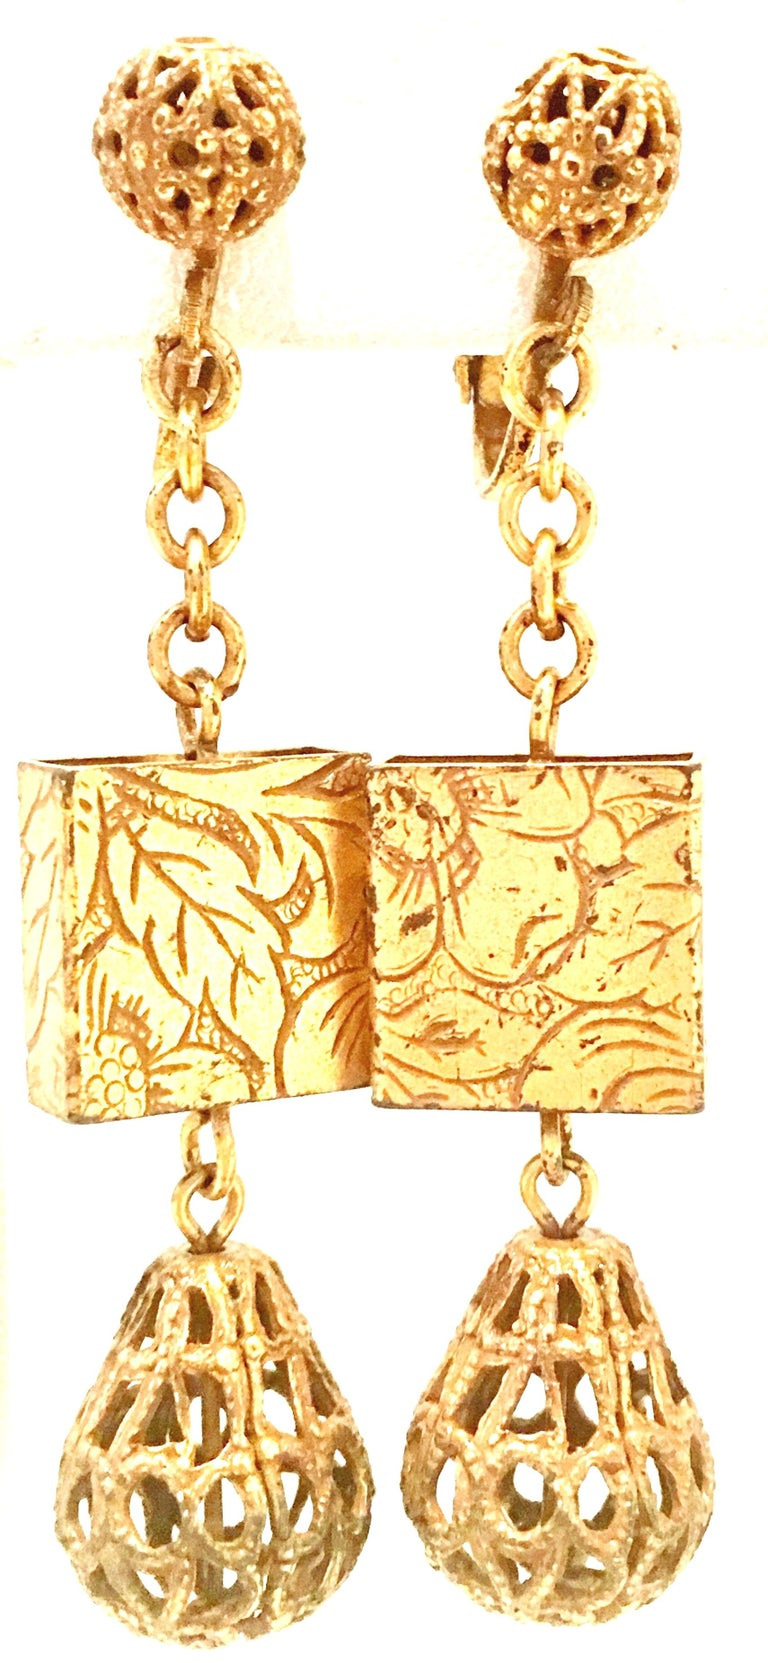 20th Century Art Nouveau Gold Book Chain Choker Style Necklace & Earrings S/3 For Sale 5